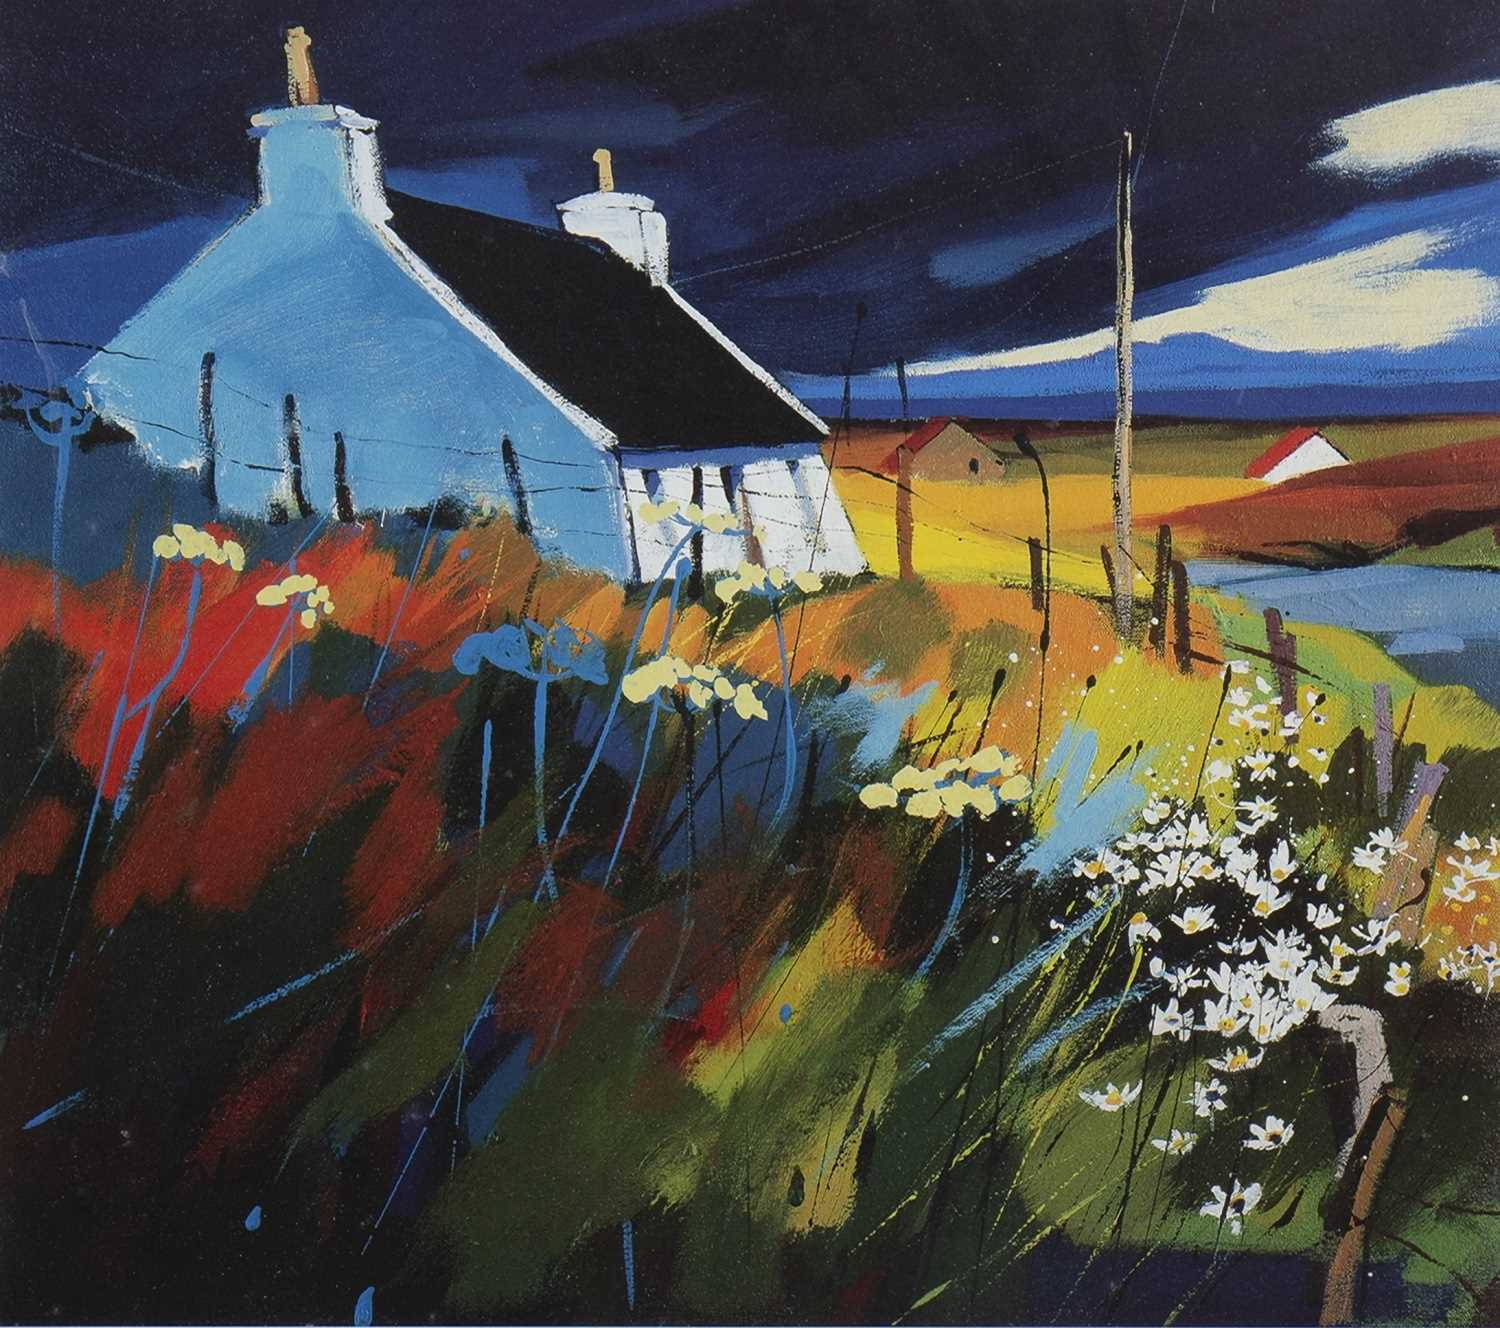 Lot 568-NORTH THROUGH GEARY, A SIGNED LIMITED EDITION PRINT BY PAM CARTER